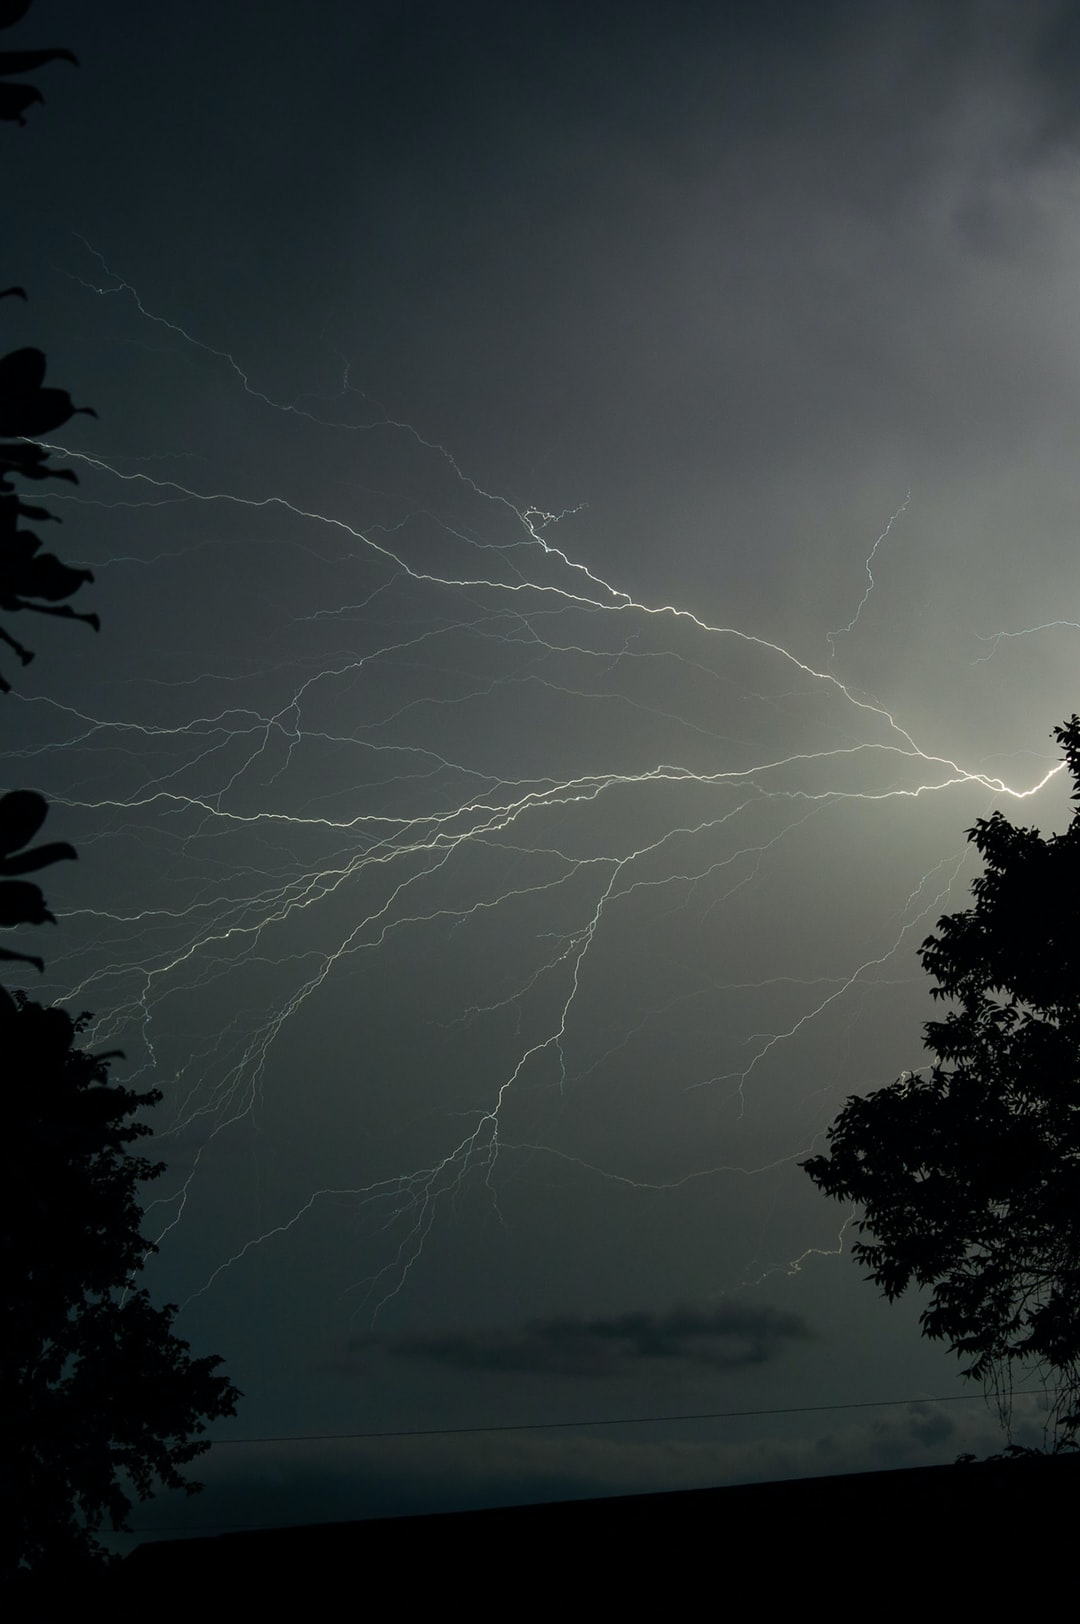 A storm was making its way through North Alabama when I set up my camera on its tripod with my remote shutter release and took this photo and many others of this electric storm.